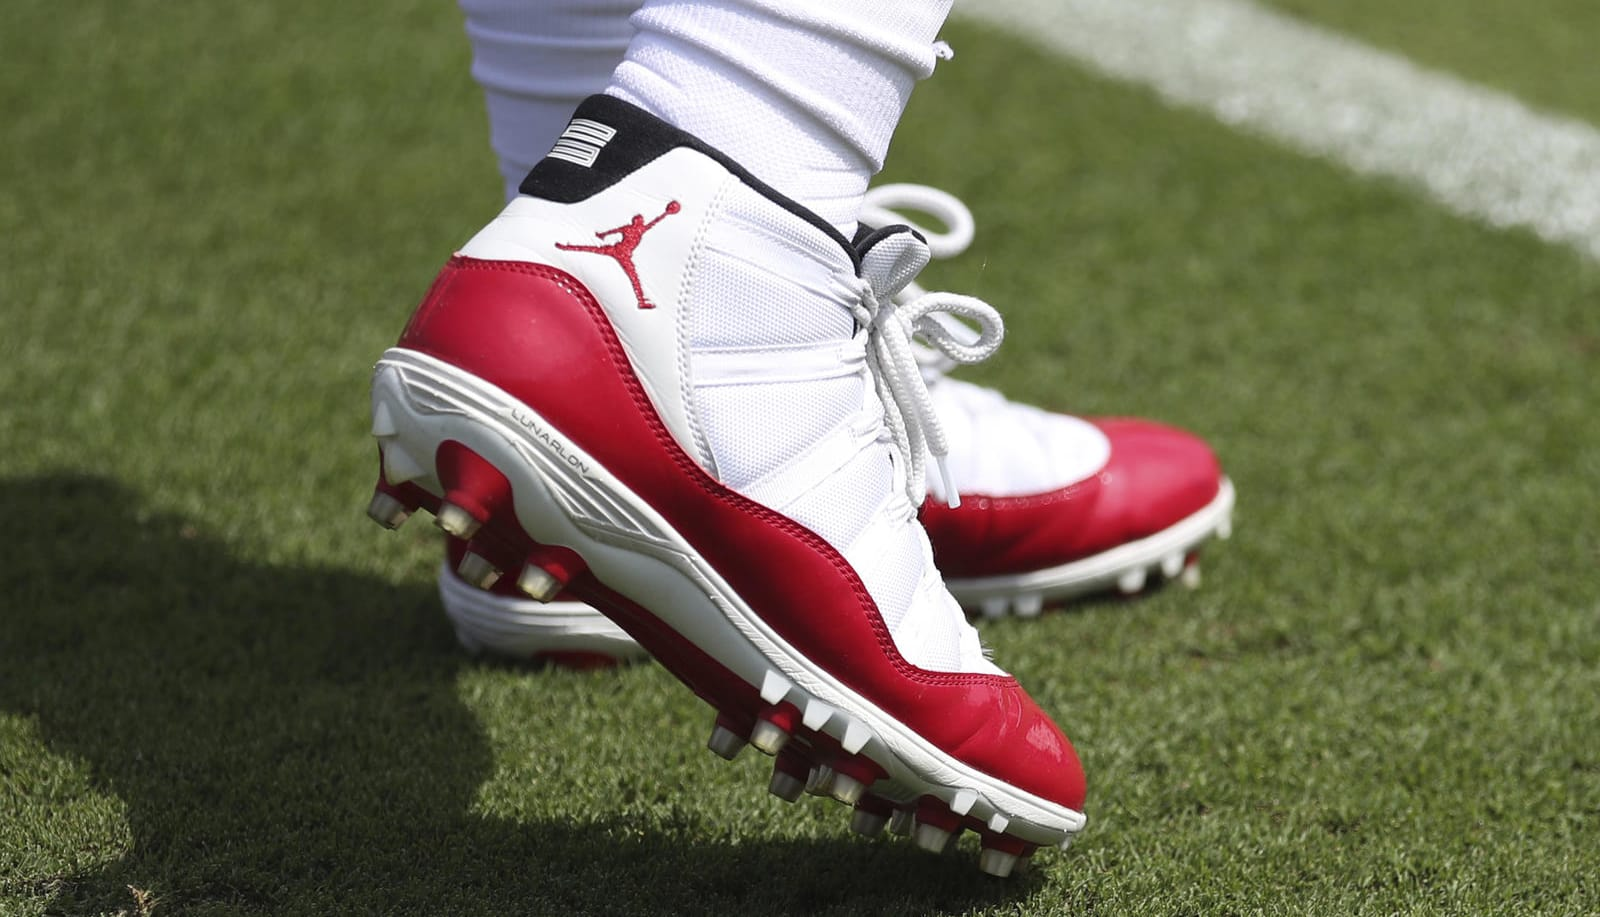 Jumpman Jumps into the NFL